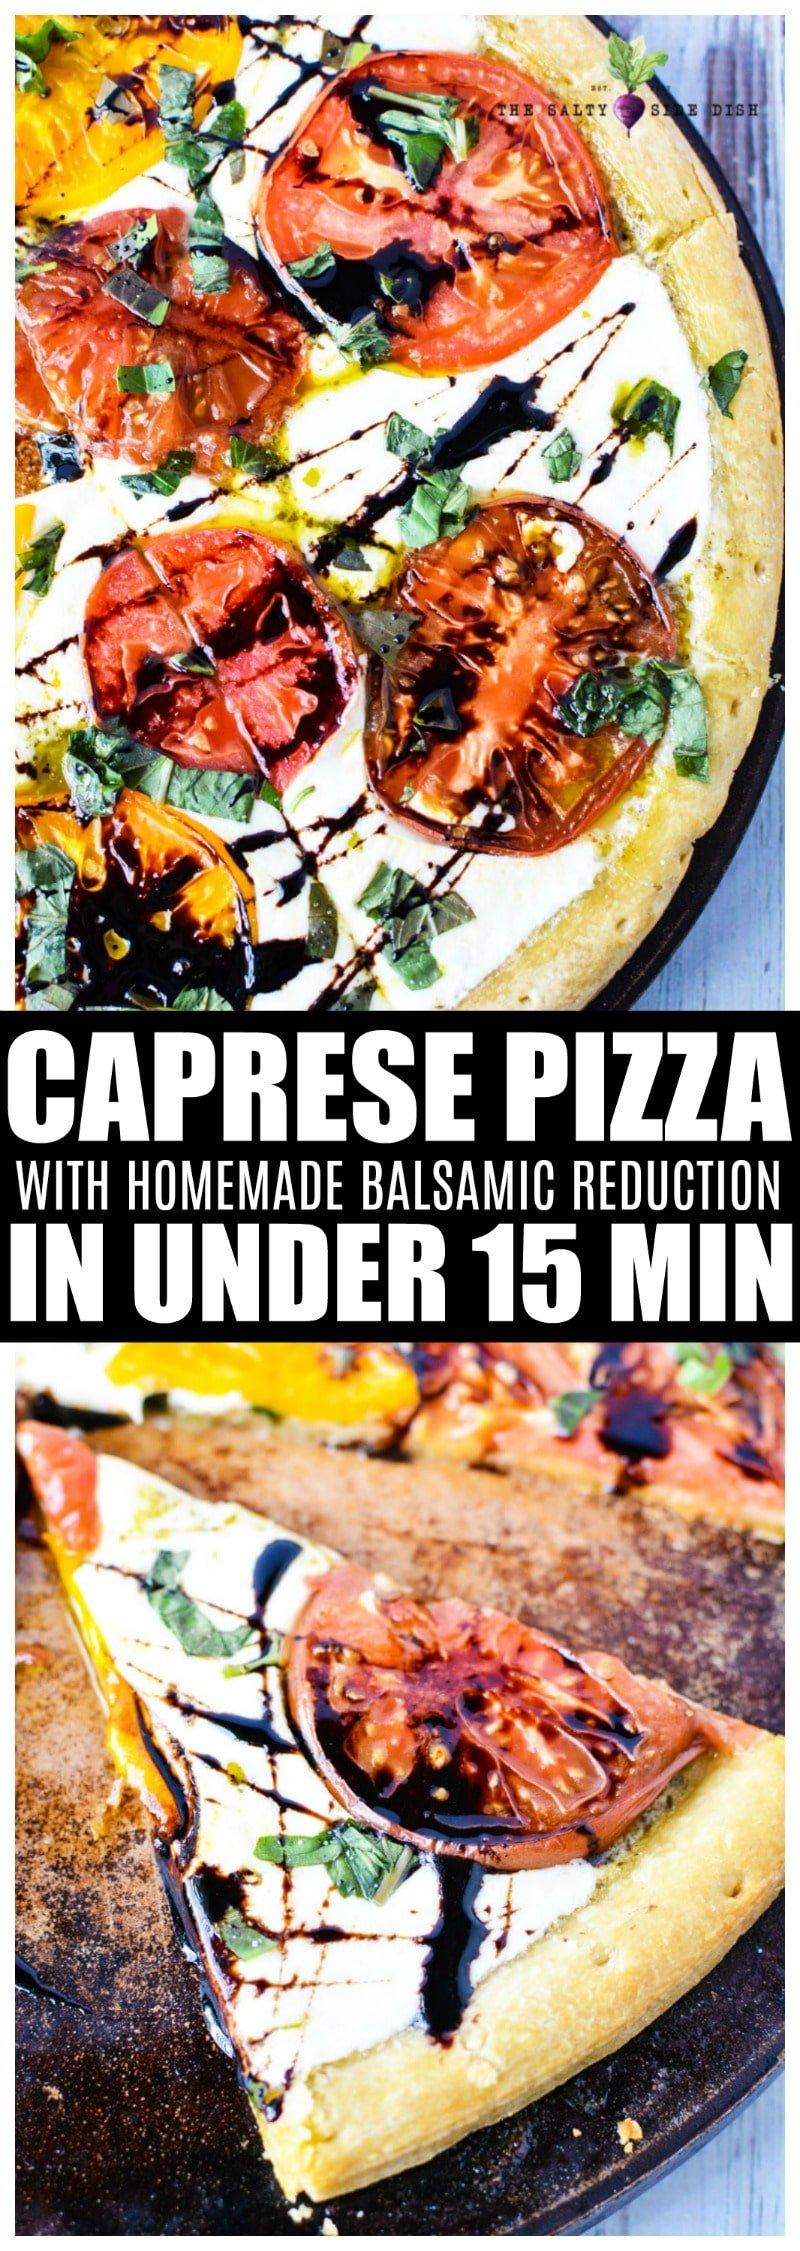 Caprese Pizza with homemade balsamic glaze | Perfect Appetizer or Main Dish #caprese #pizza #sidedish #appetizer